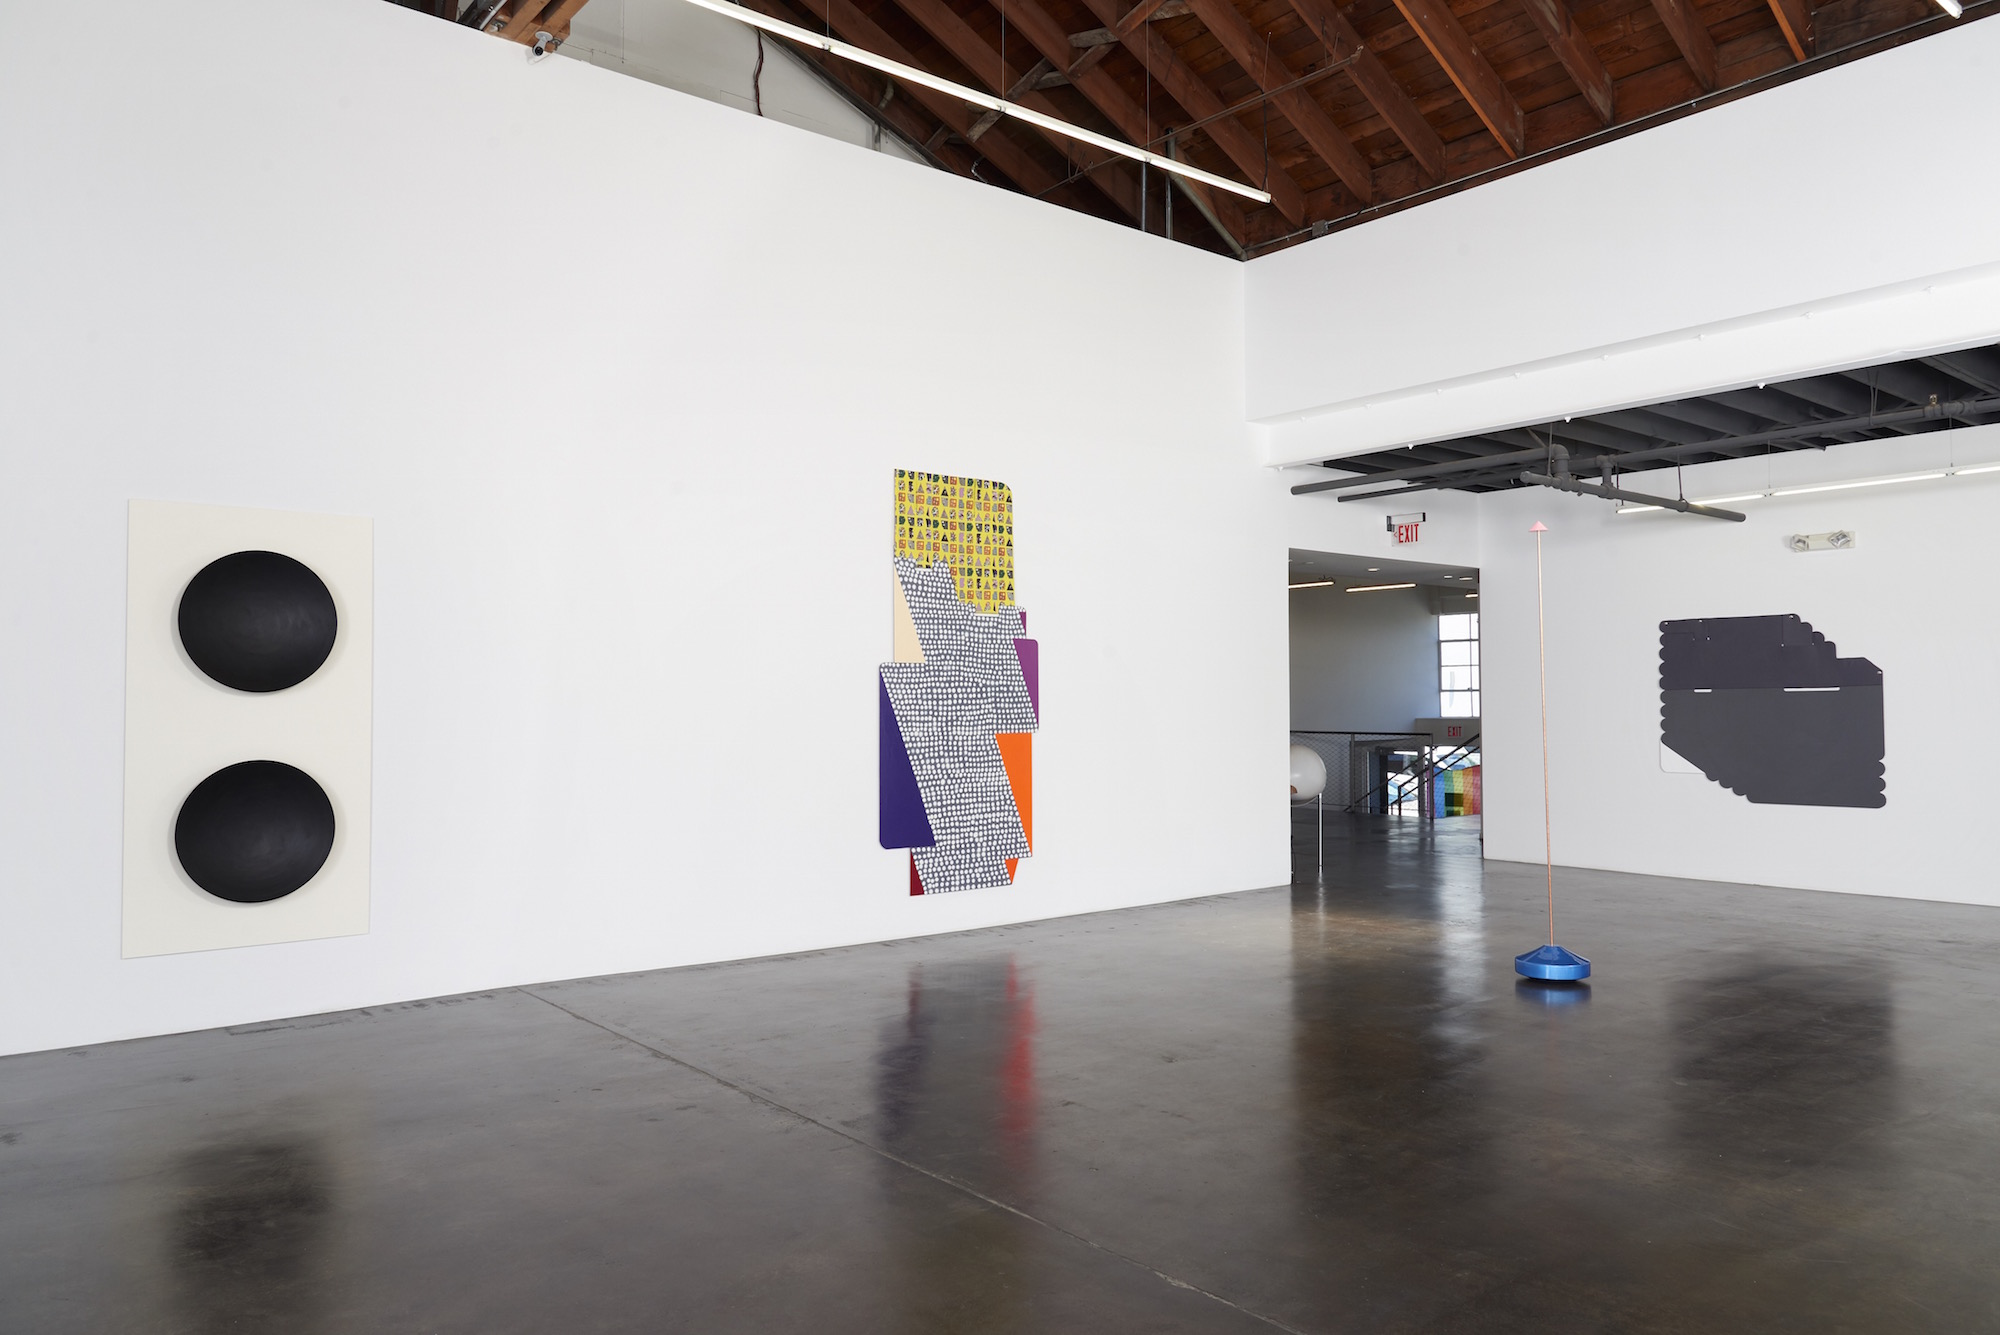 Installation view of 'Twist' at fused, showing works by Lisa Williamson, Ruth Root and Reuven Israel.  (Courtesy of Jessica Silverman Gallery)